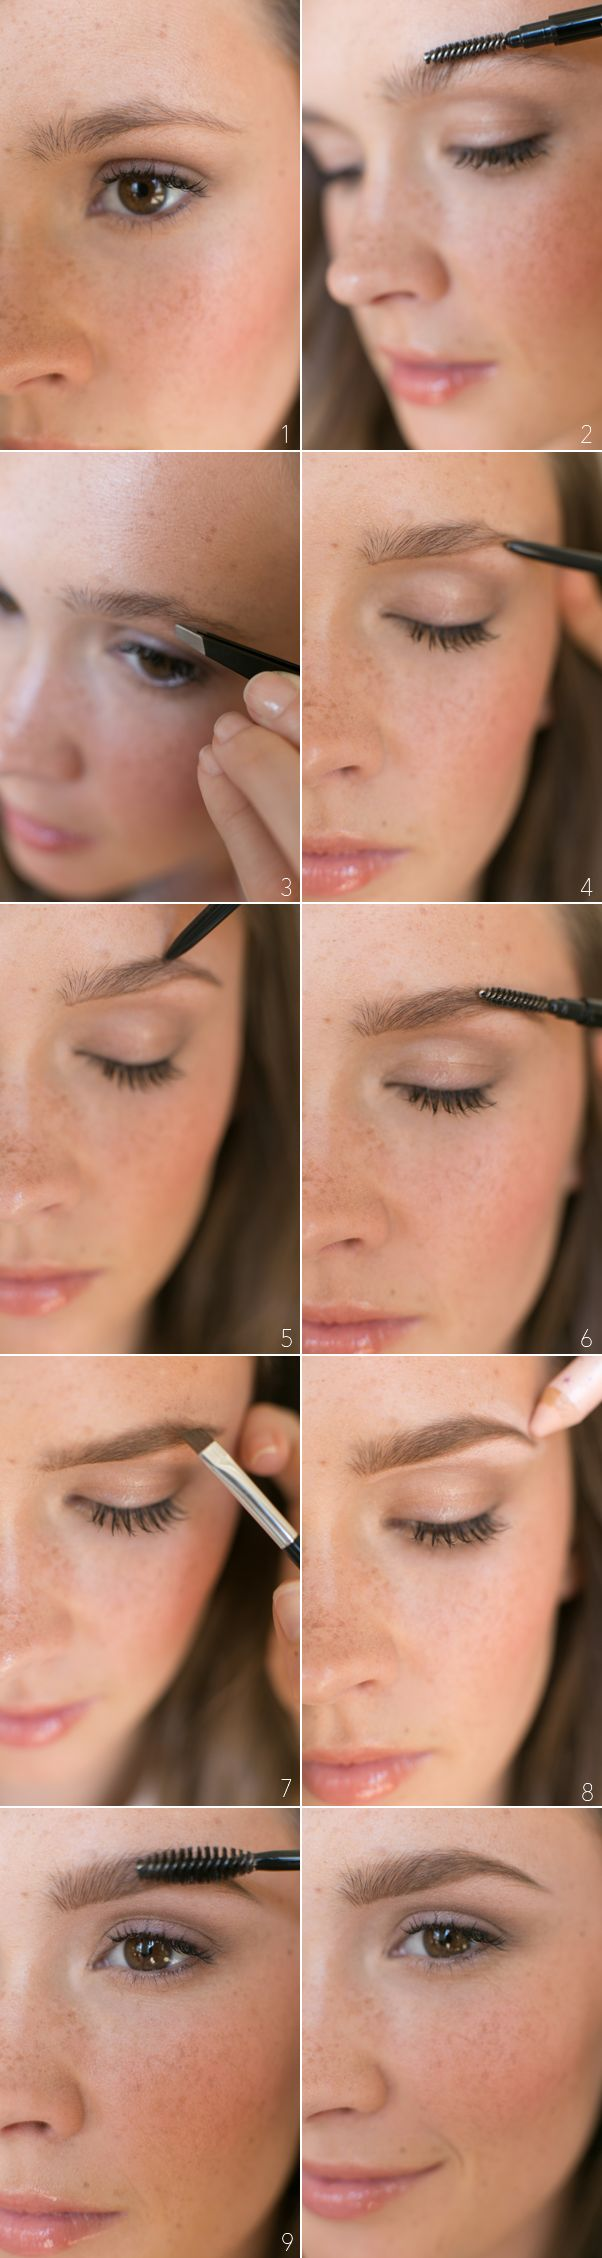 DIY Natural brow cosmetics tutorial. Man, I could have used this as a self-makeuping bride.